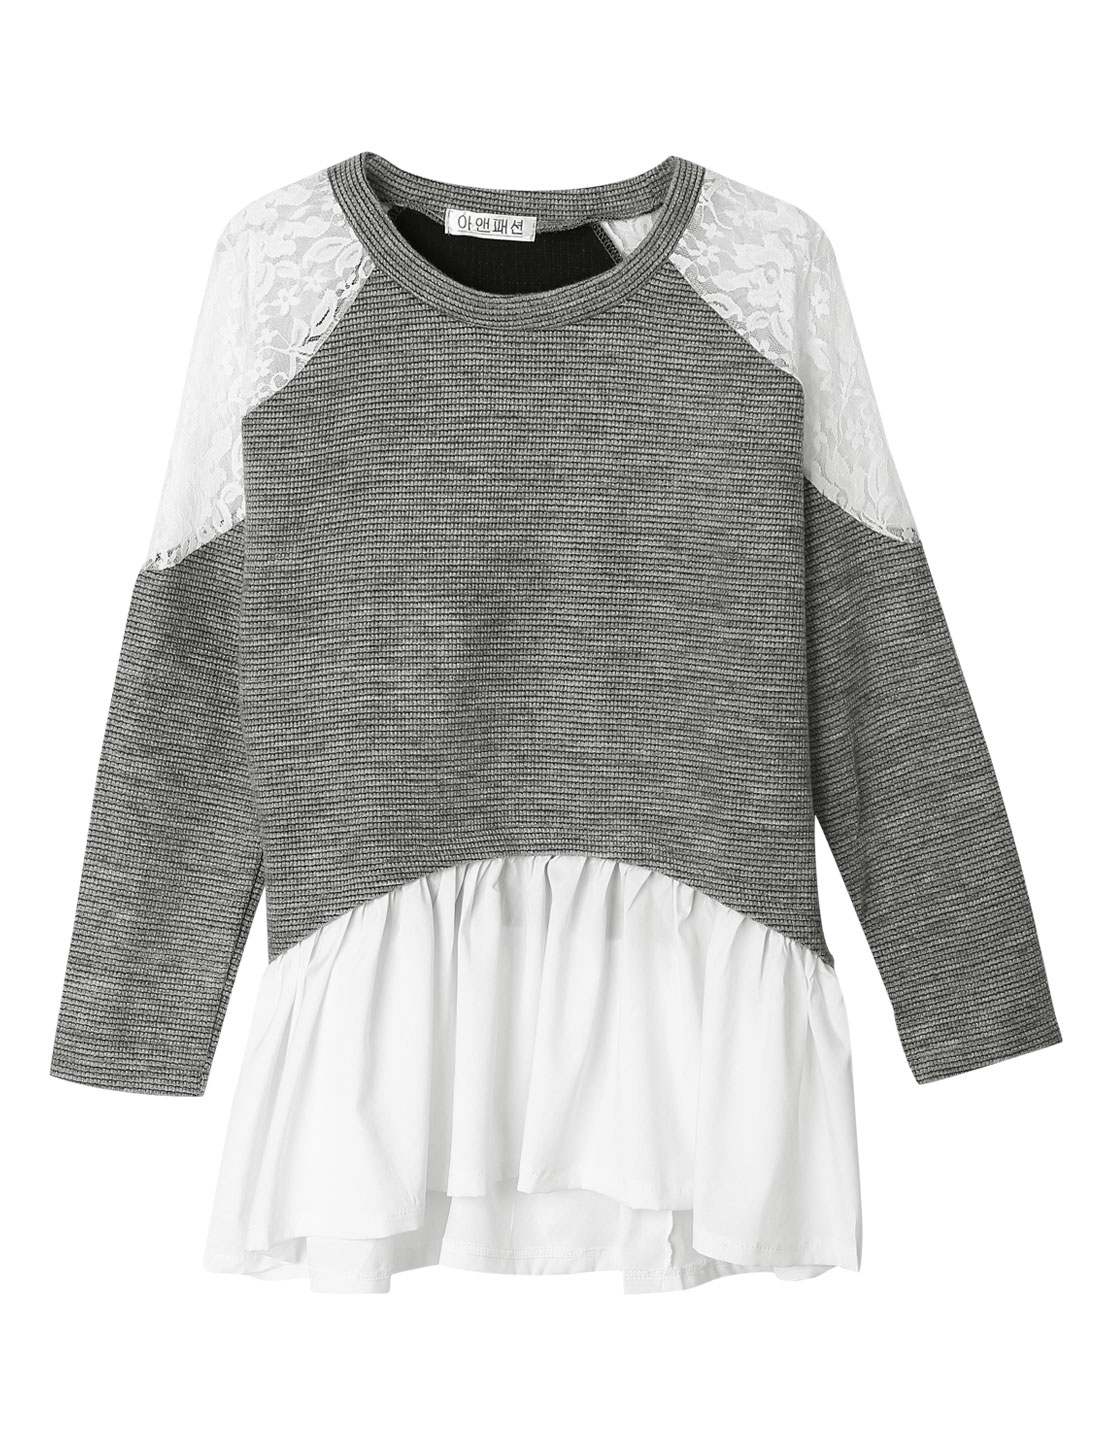 Woman Long Sleeves Ruffled Hem Spliced Light Gray Knit Top S